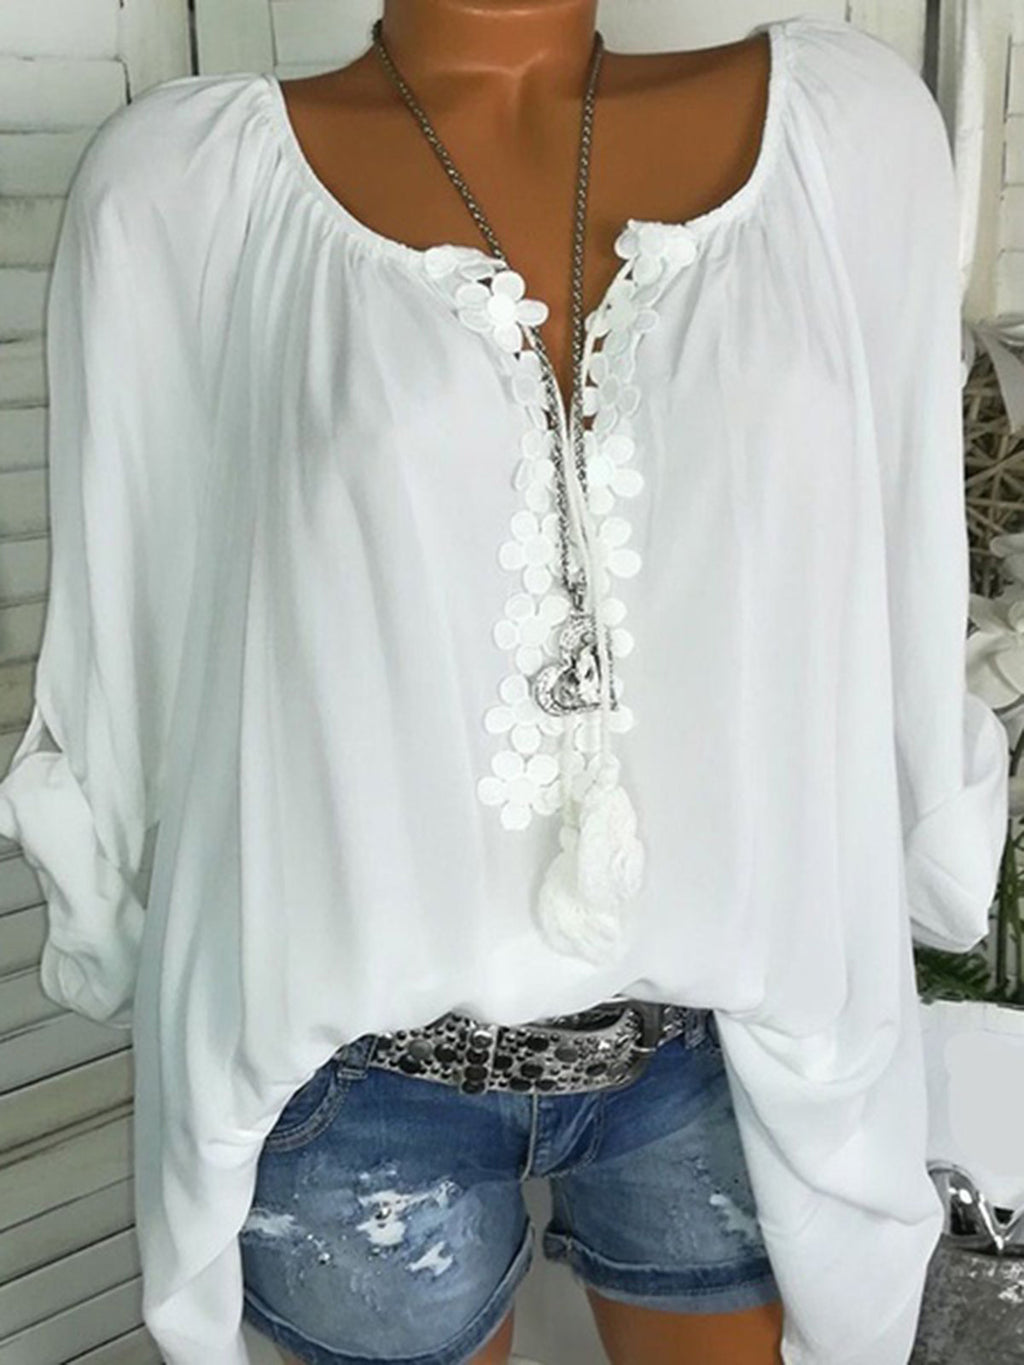 Casual Fringed Boho Tops t Shirts